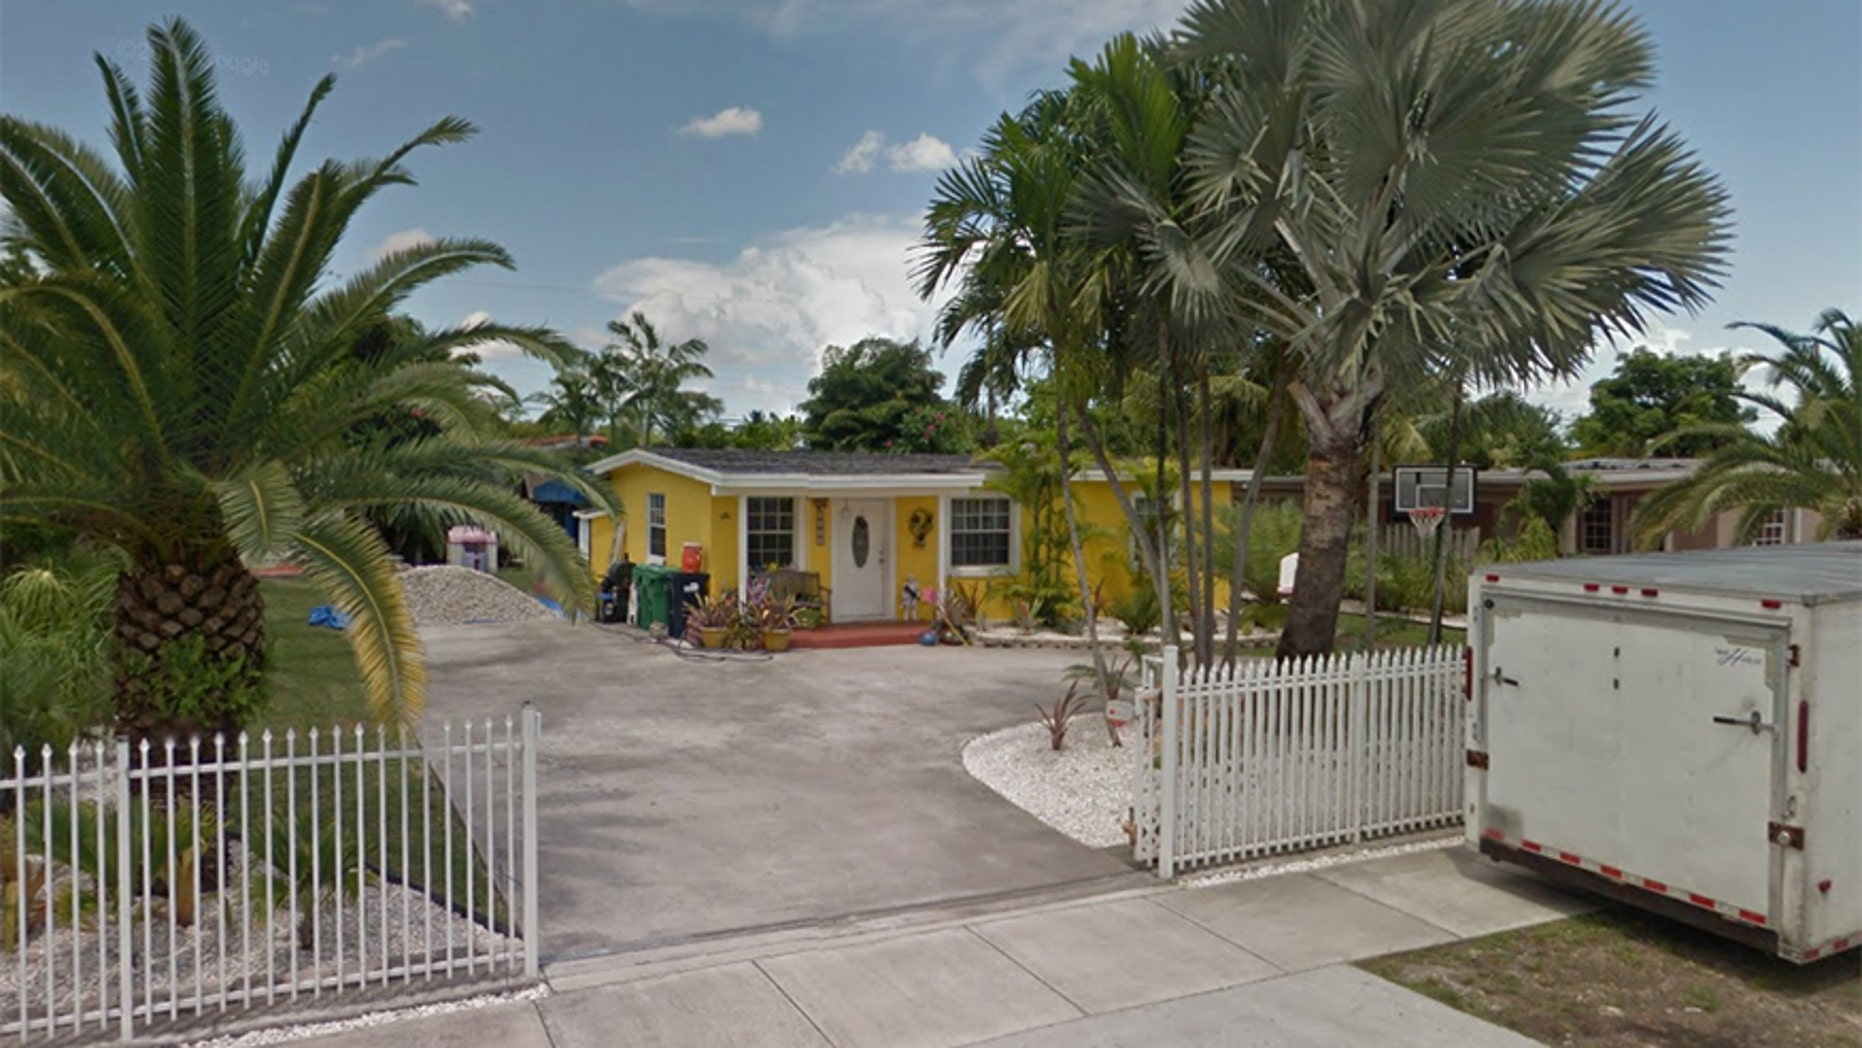 A 7-year-old girl was bit by her dog outside this home in Miami-Dade county.